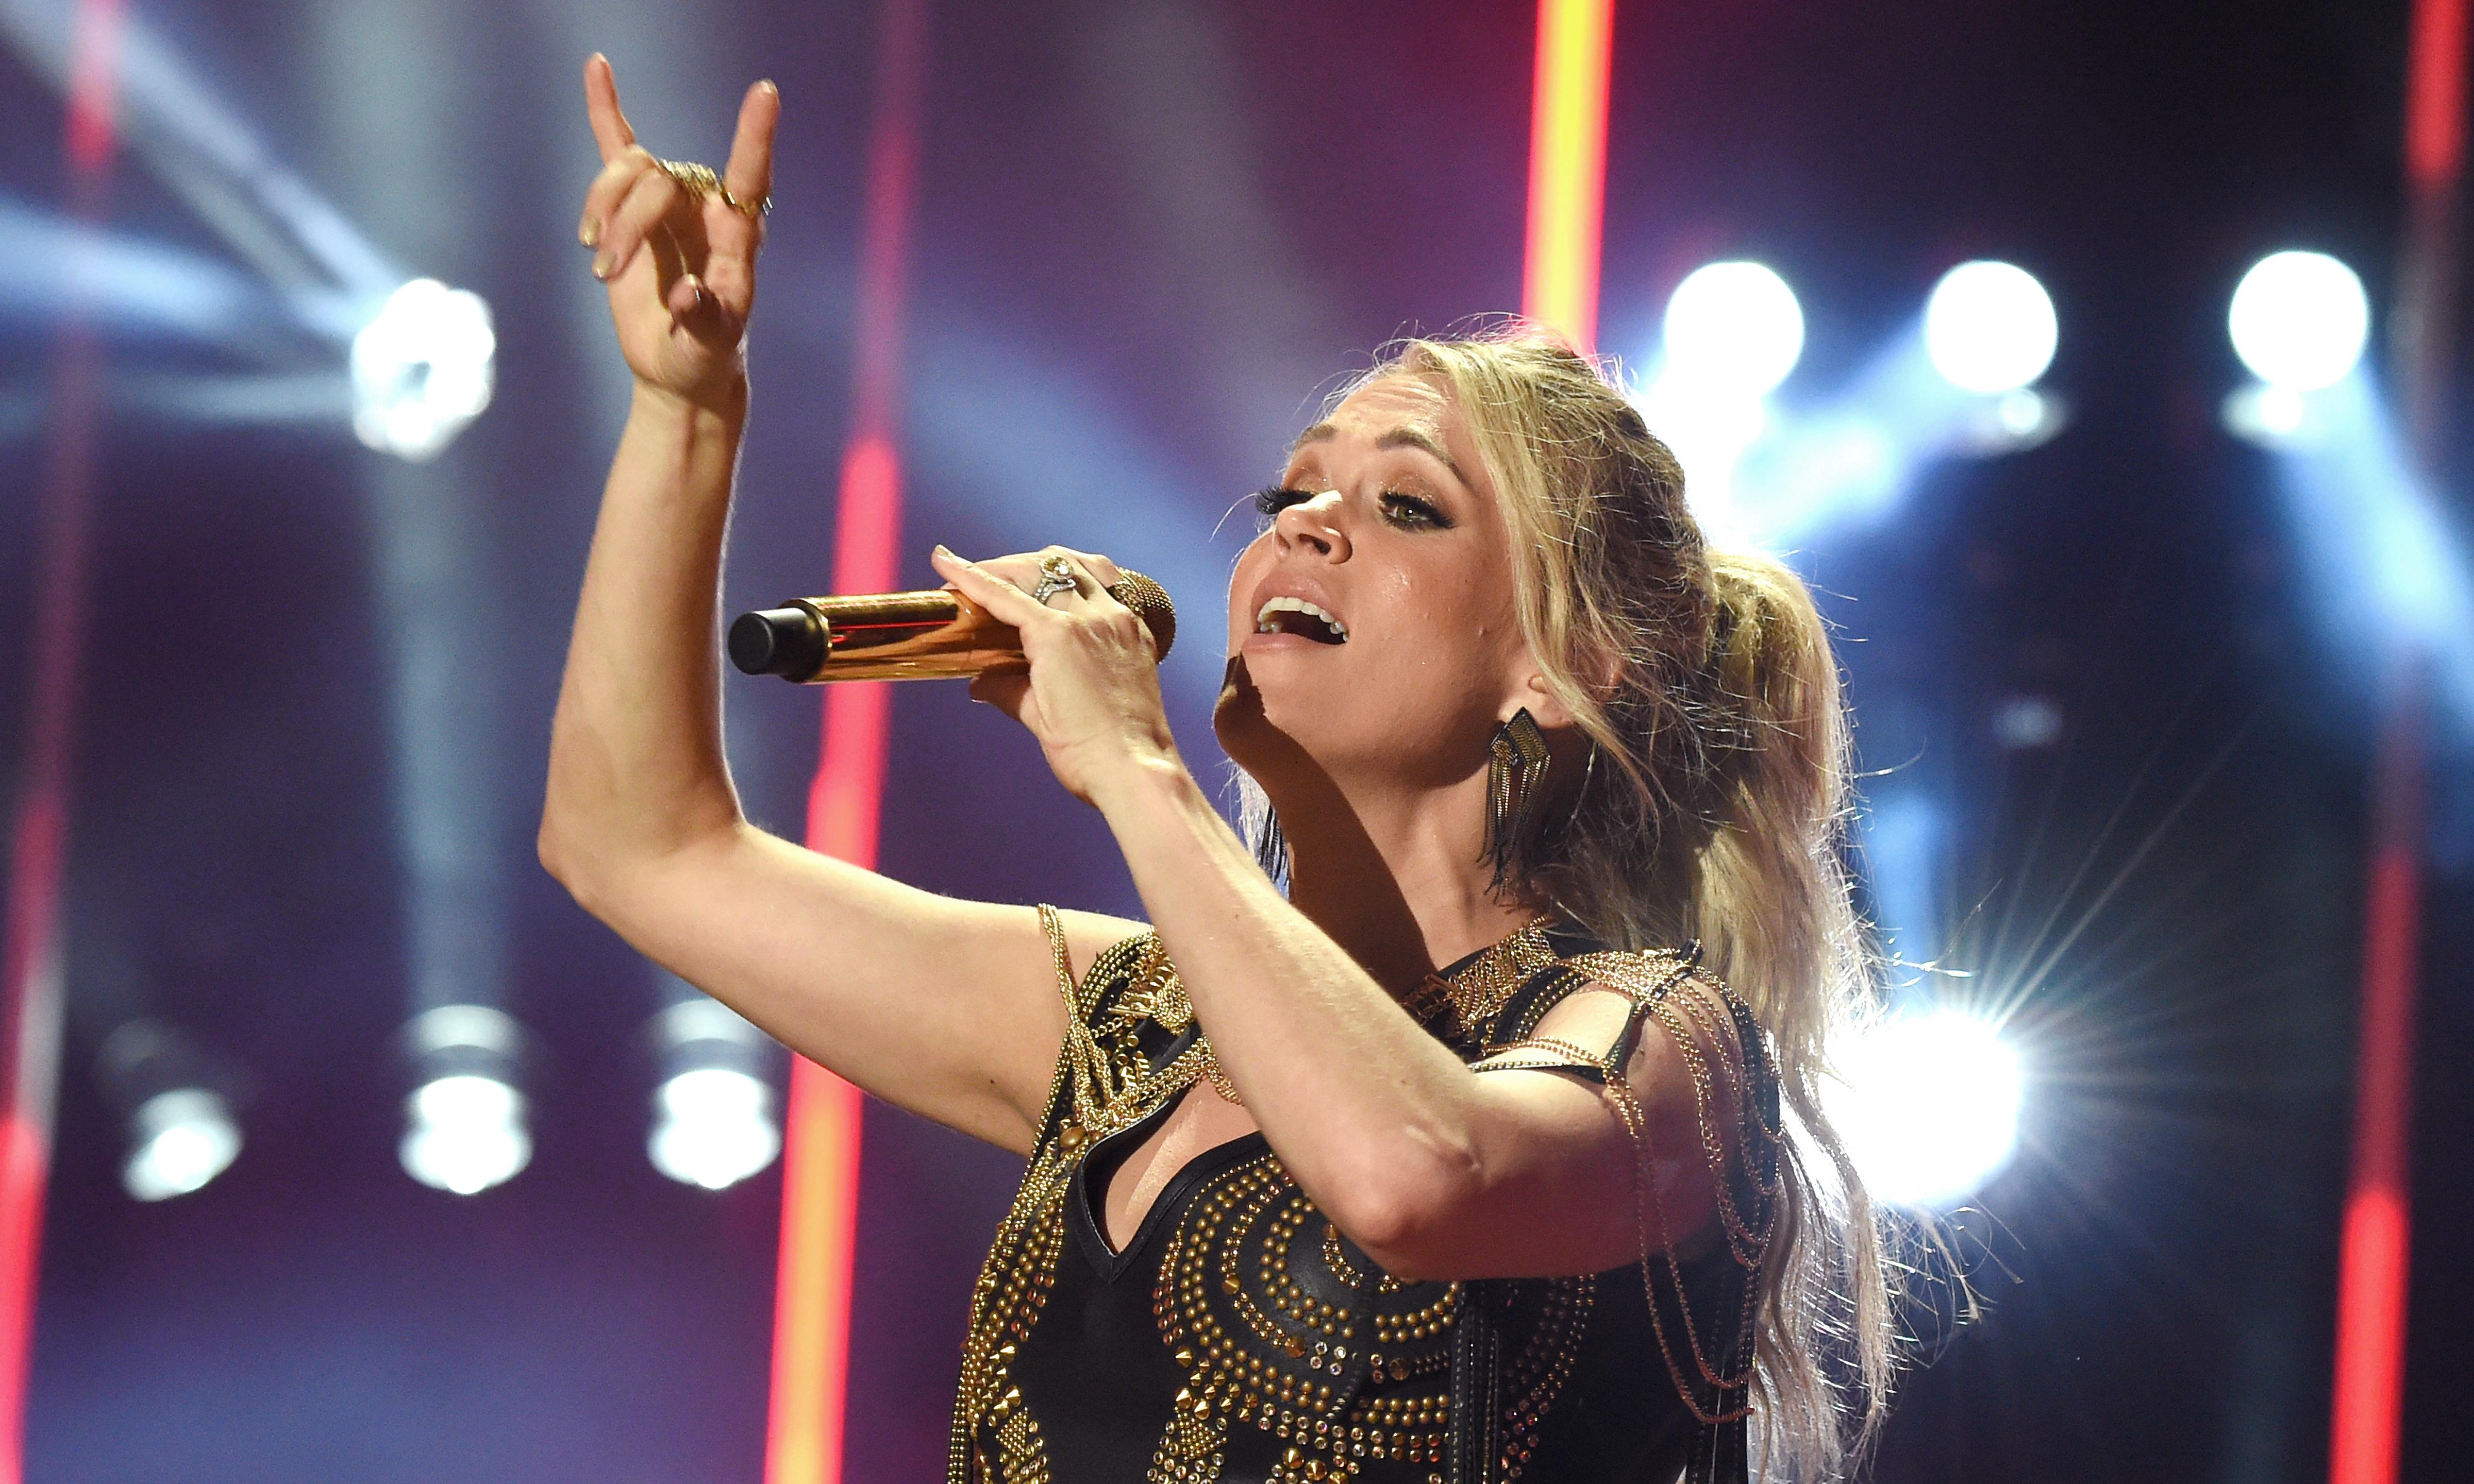 Carrie Underwood: 'I'd put on a happy face, then go home and fall apart'